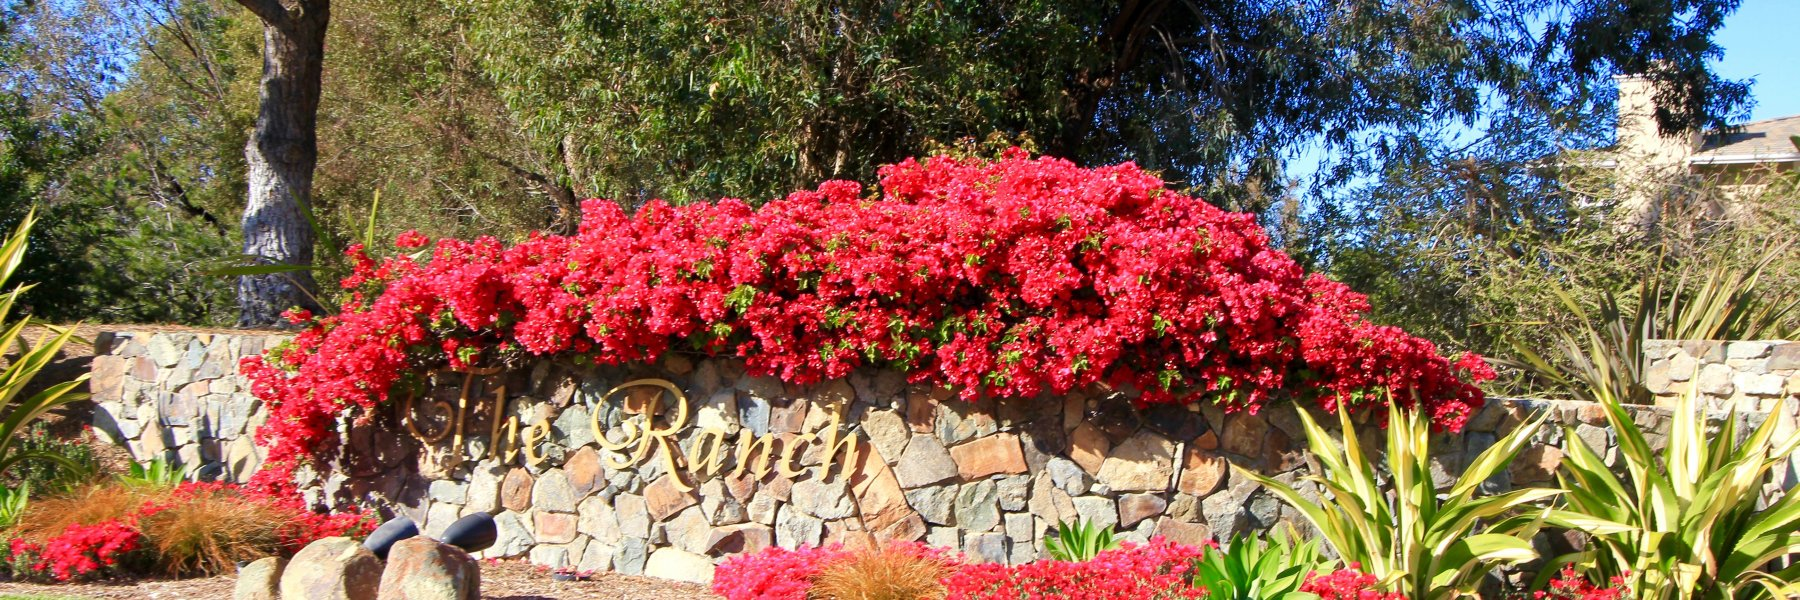 The Ranch is a community of homes in Carlsbad California